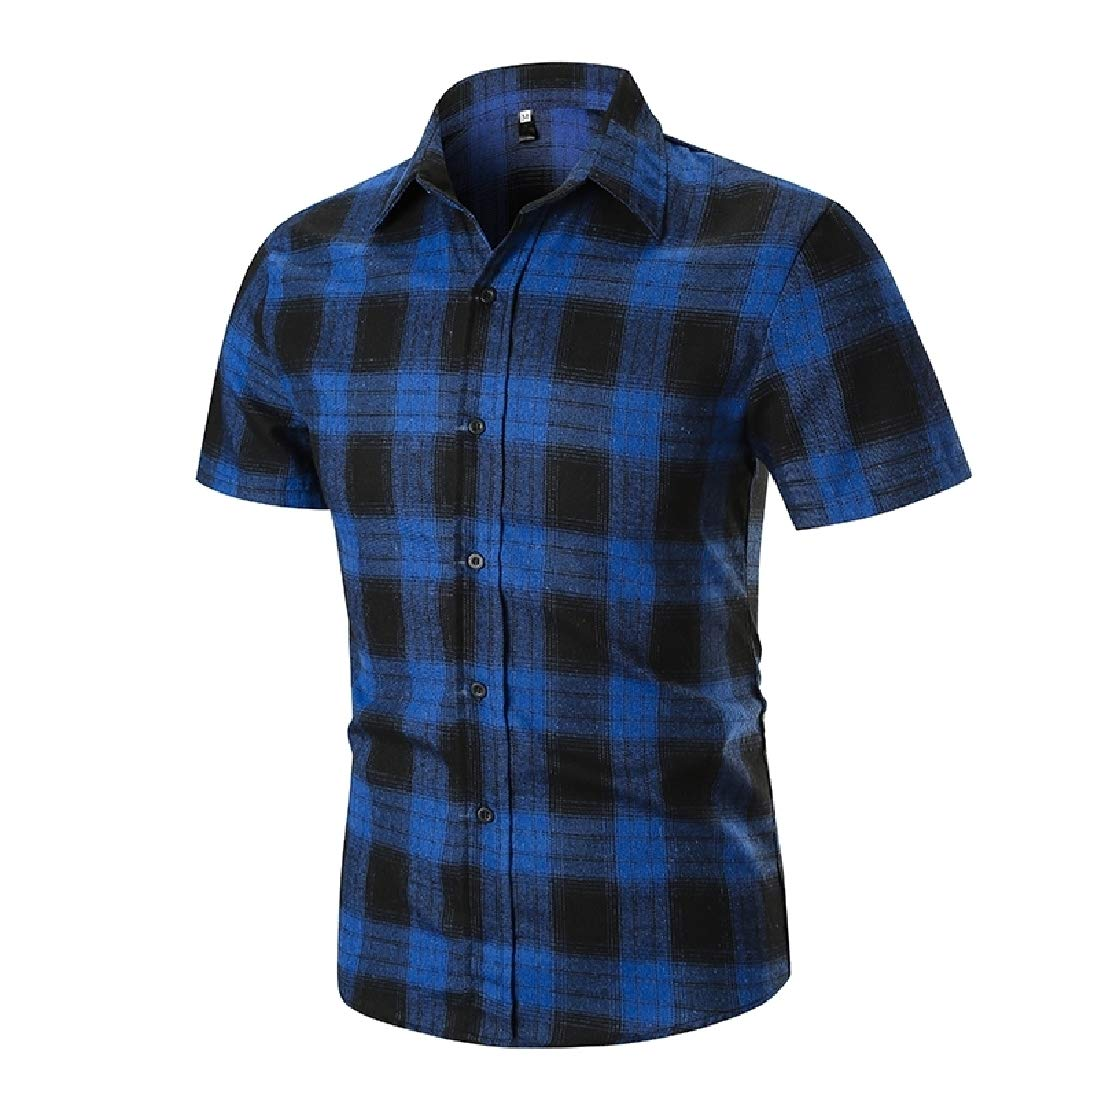 Vska Mens Short-Sleeve Plaid Summer Turn Down Collar Button Down Shirt